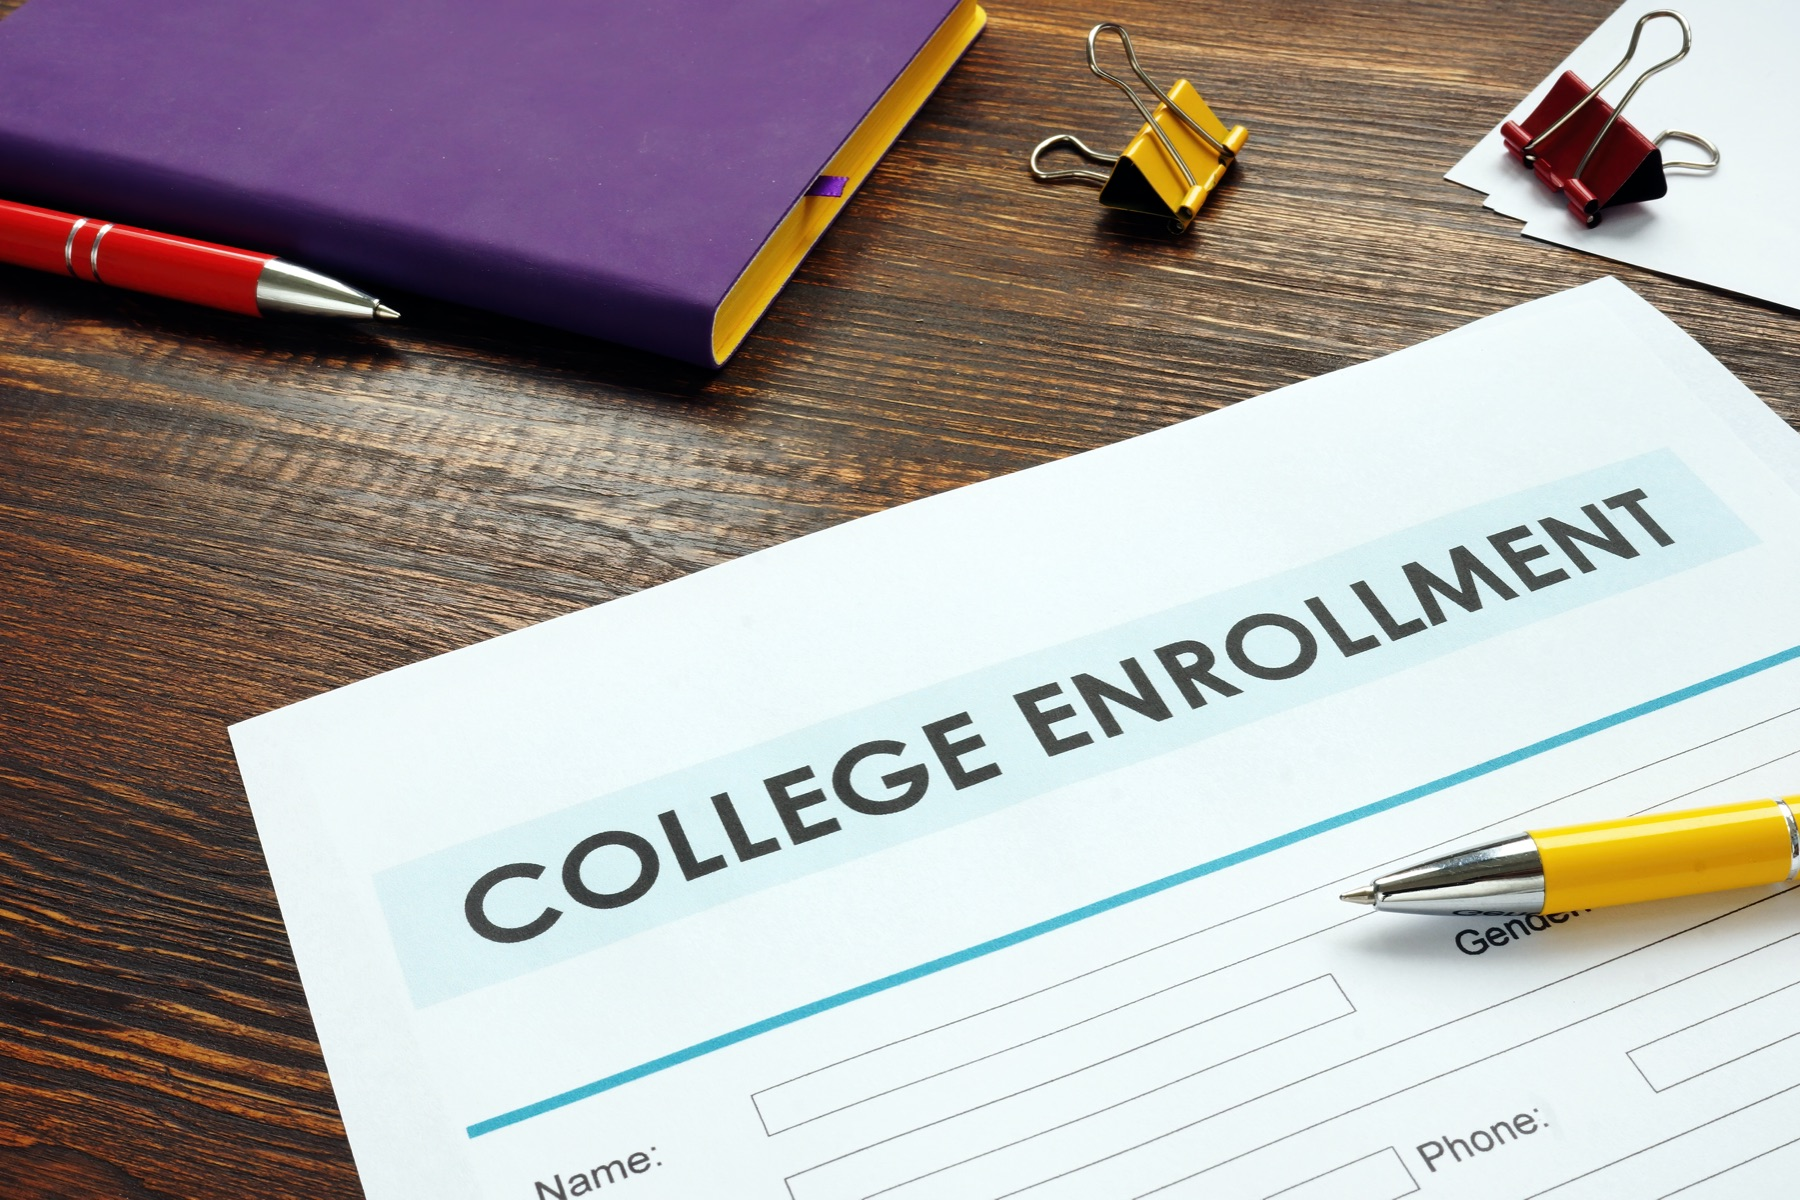 College Enrollment Is Down featured image